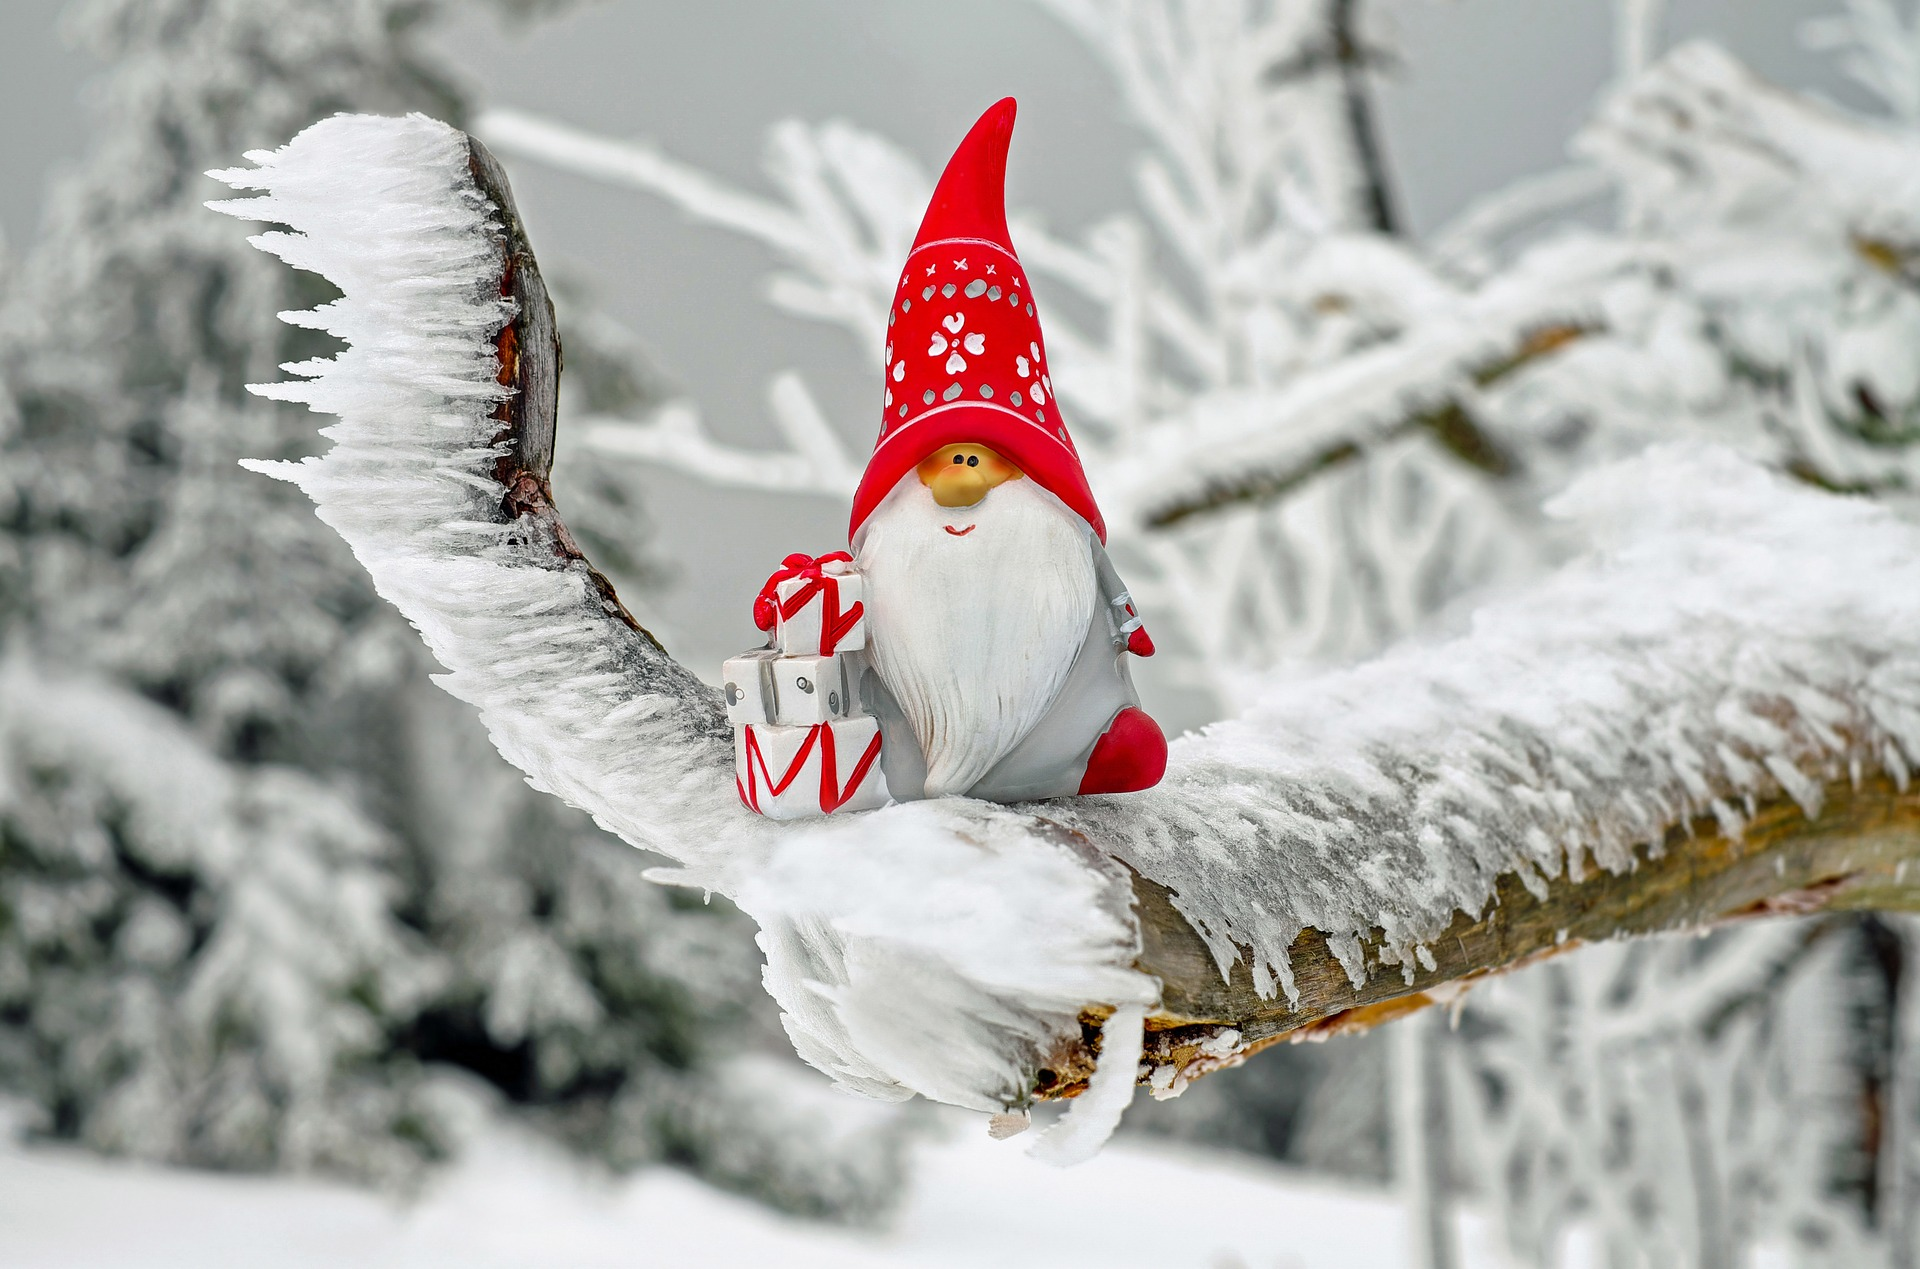 Santa ornament on a tree